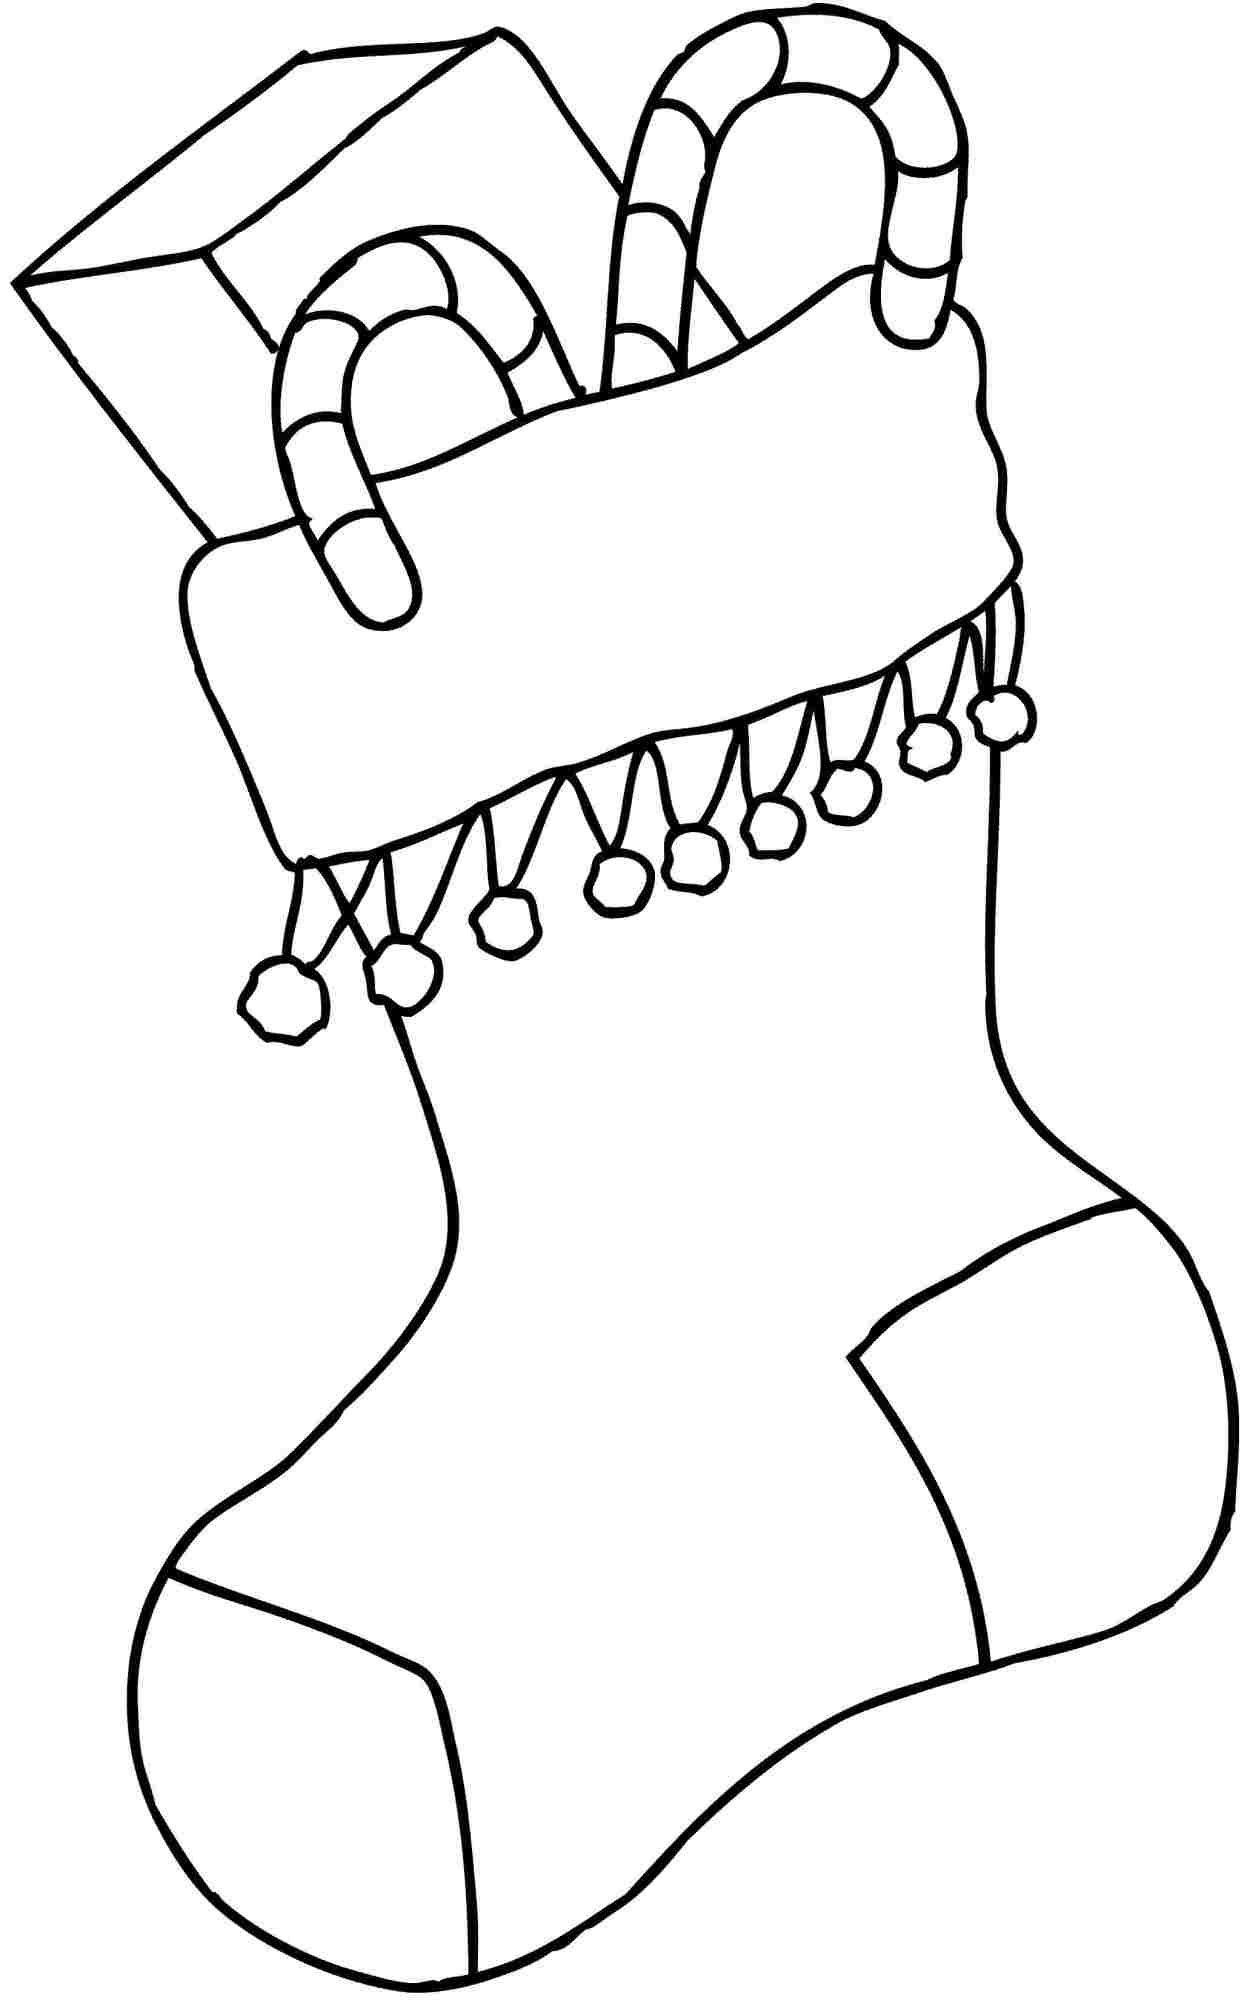 coloring pages to print out for christmas free christmas coloring pages to print wallpapers9 out christmas to pages coloring print for